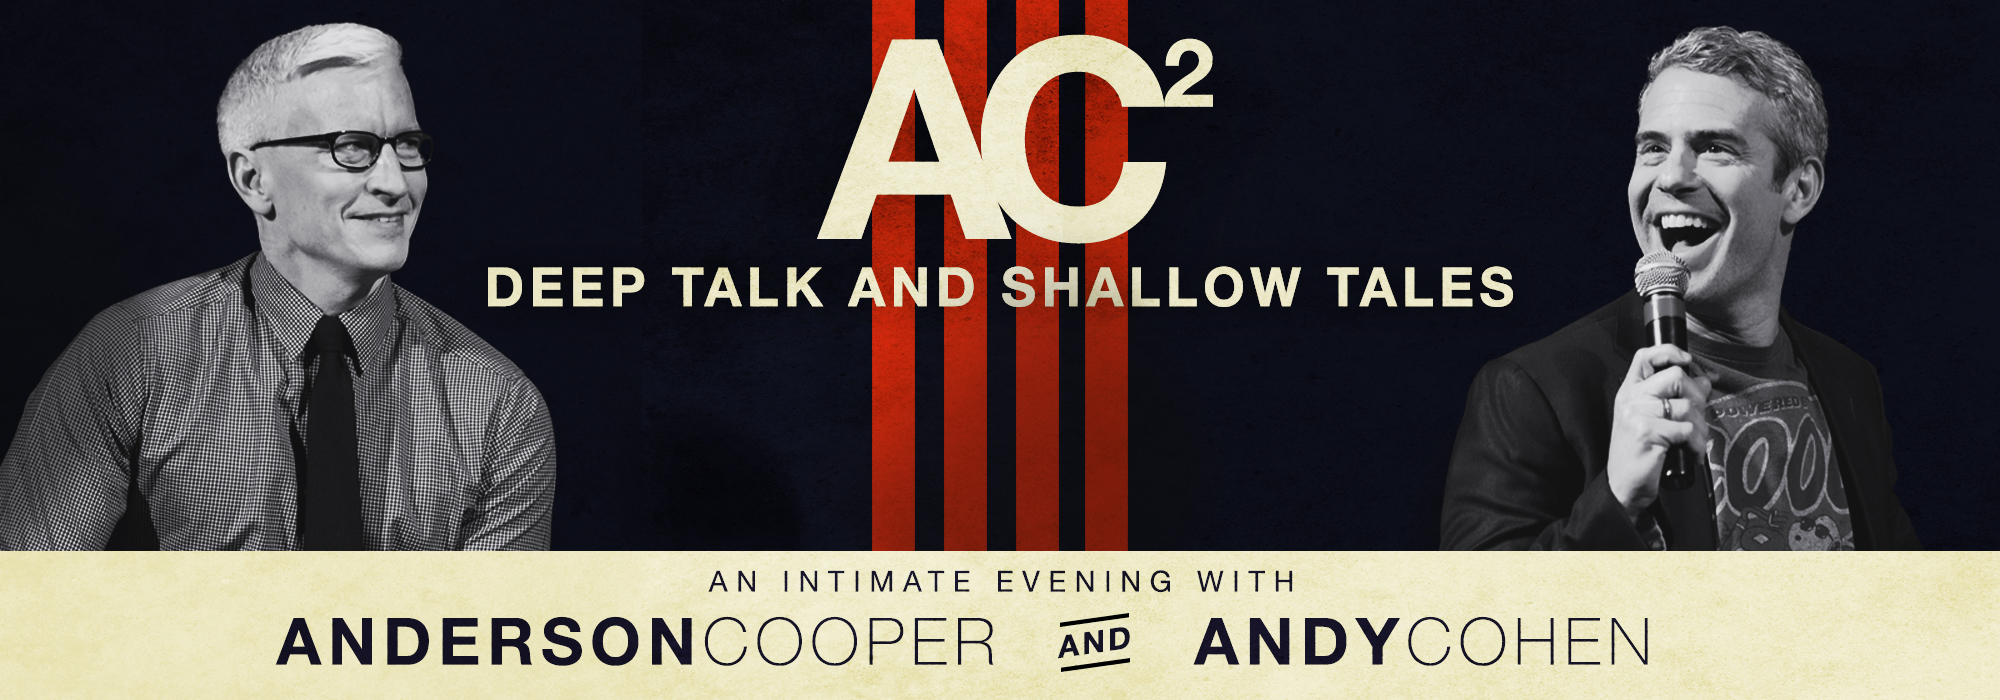 Anderson Cooper and Andy Cohen will interview each other and take questions from the audience on June 15 at Belk Theater.